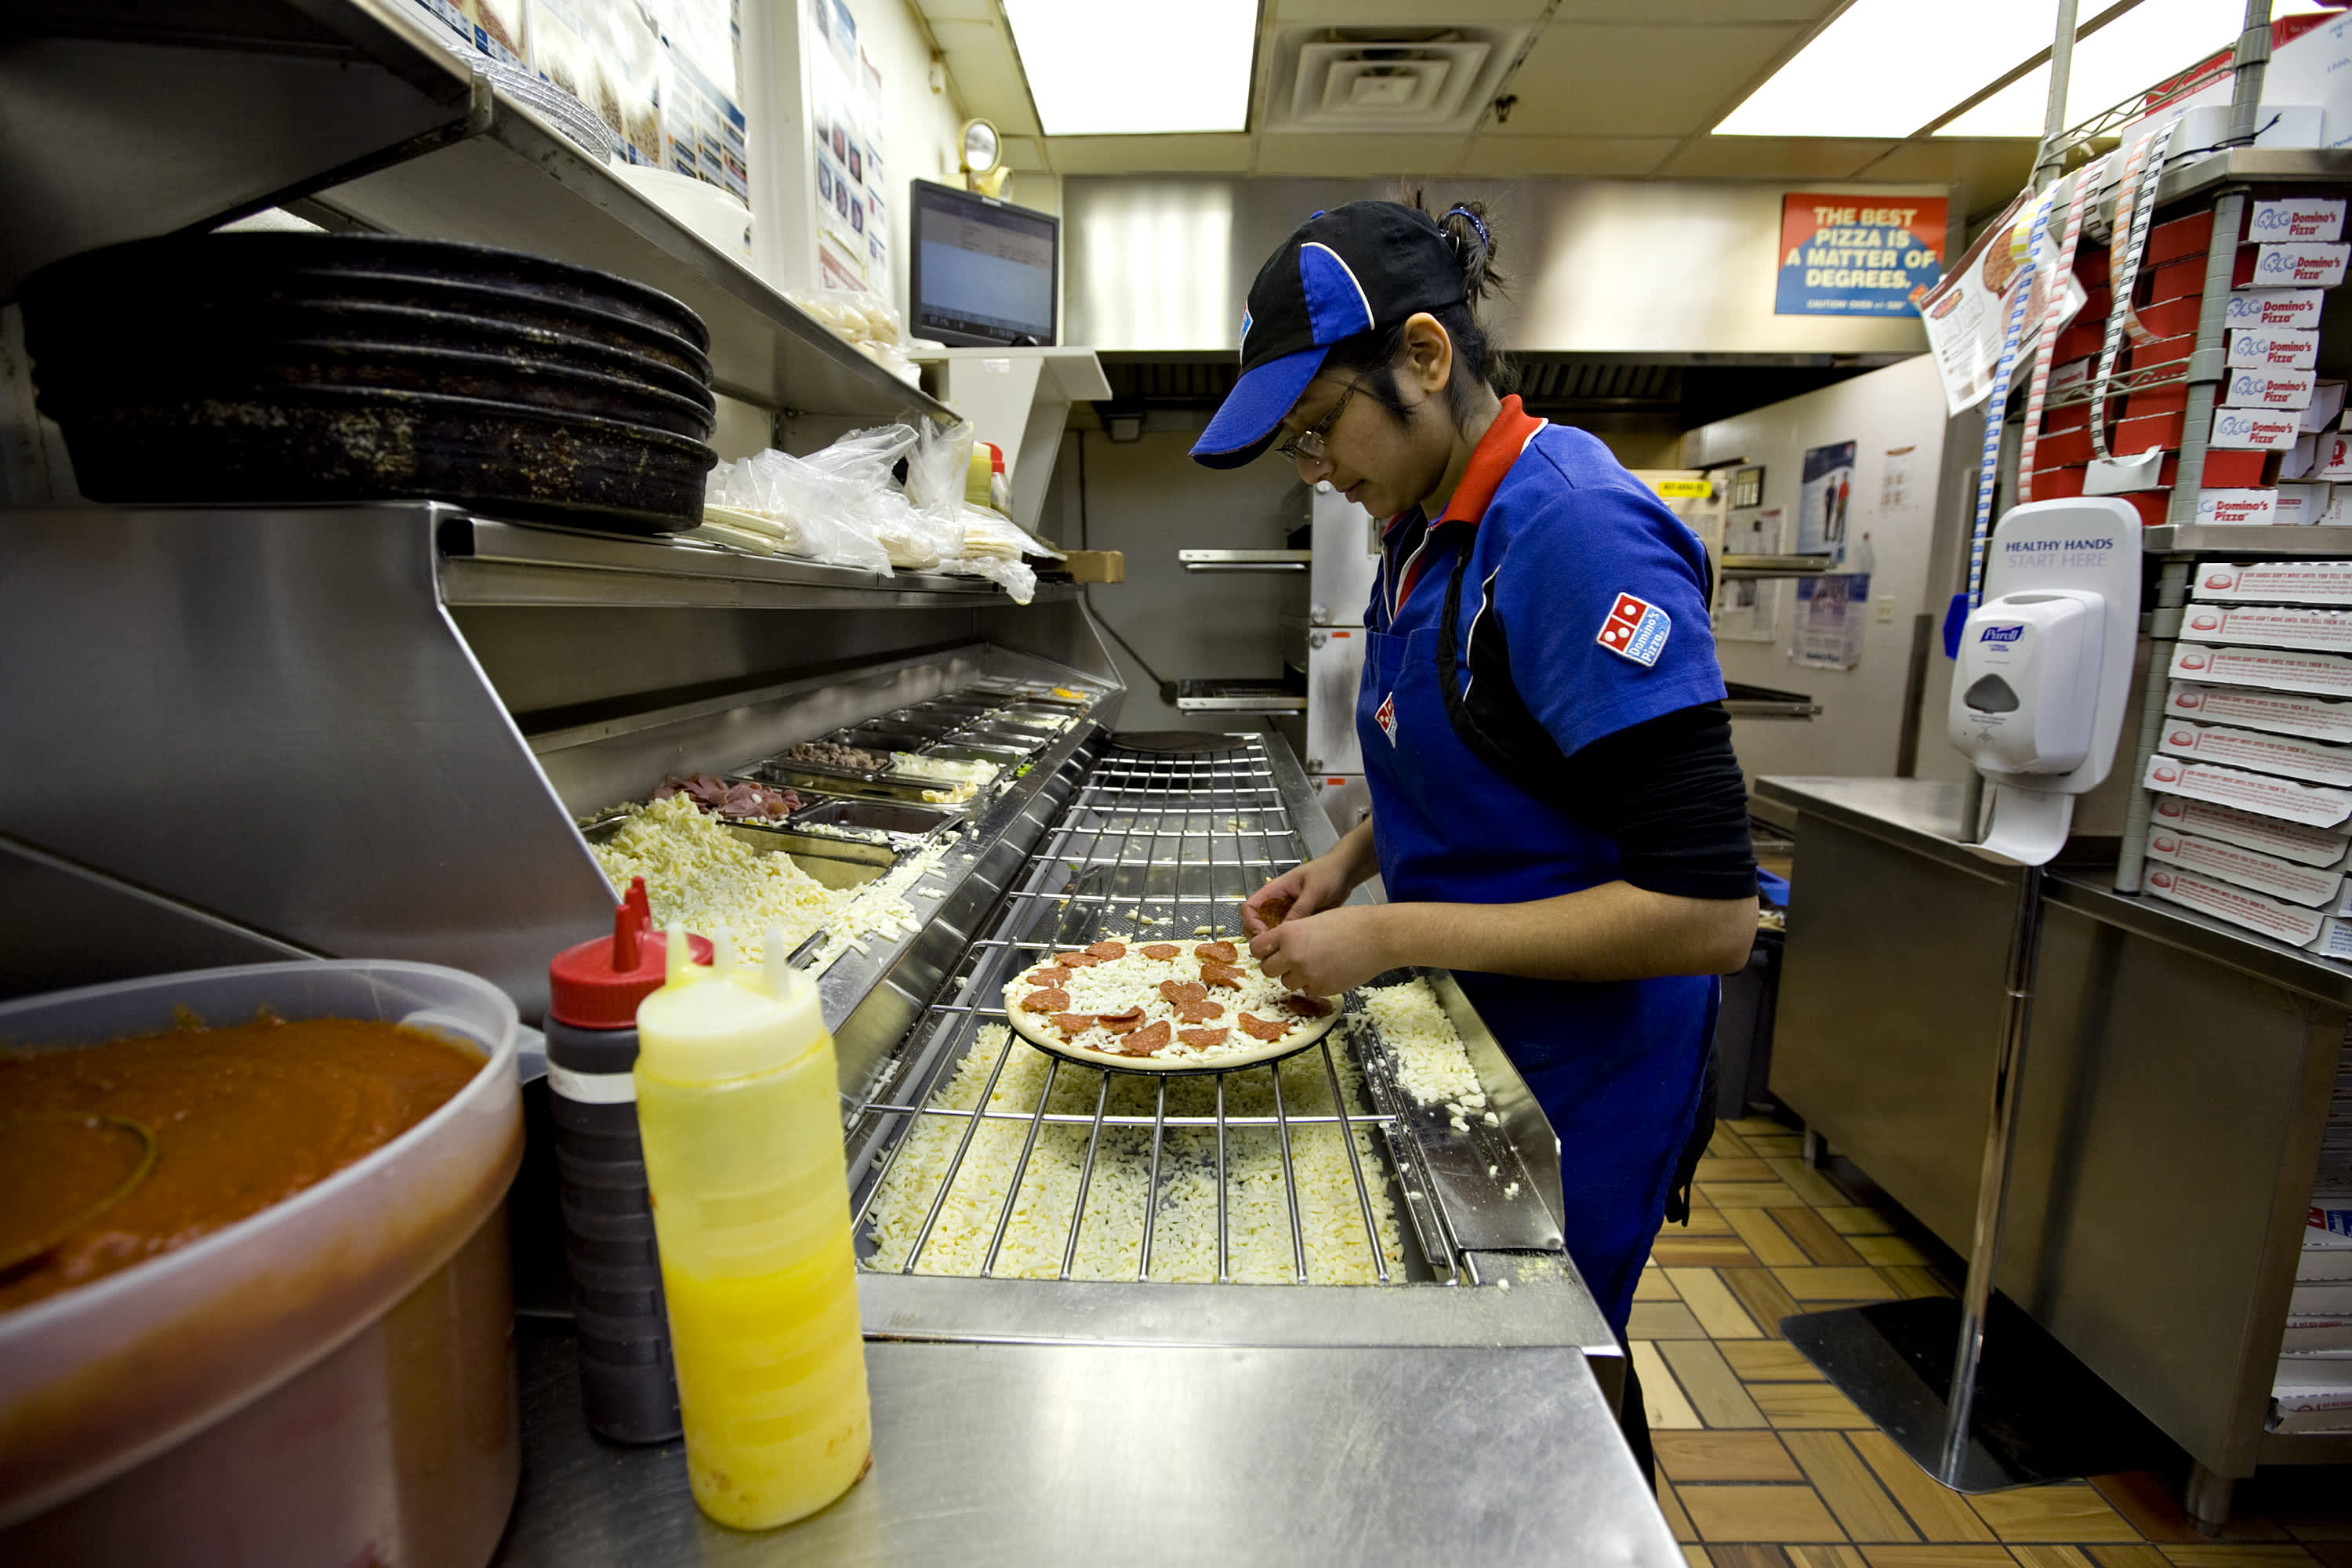 Domino's shares jump after earnings beat, shrugging off slowing sales